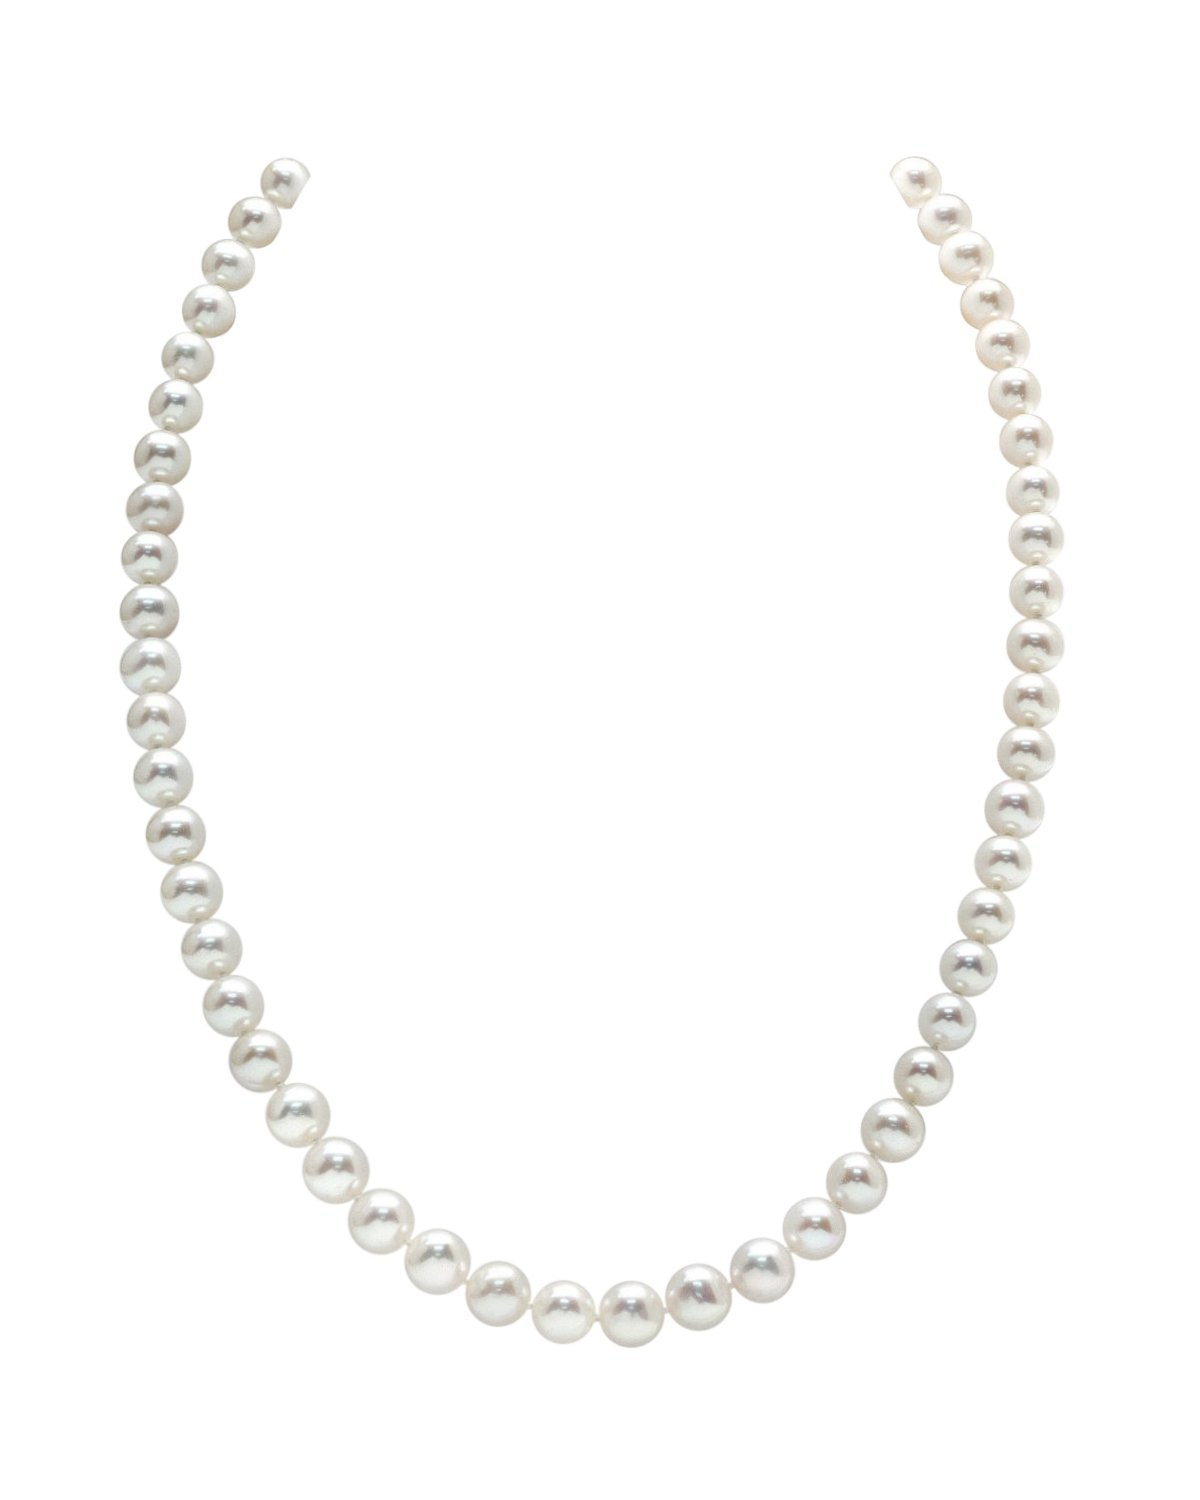 THE PEARL SOURCE 14K Gold 5.0-5.5mm AAAA Quality Round White Freshwater Cultured Pearl Necklace for Women 18'' Princess Length